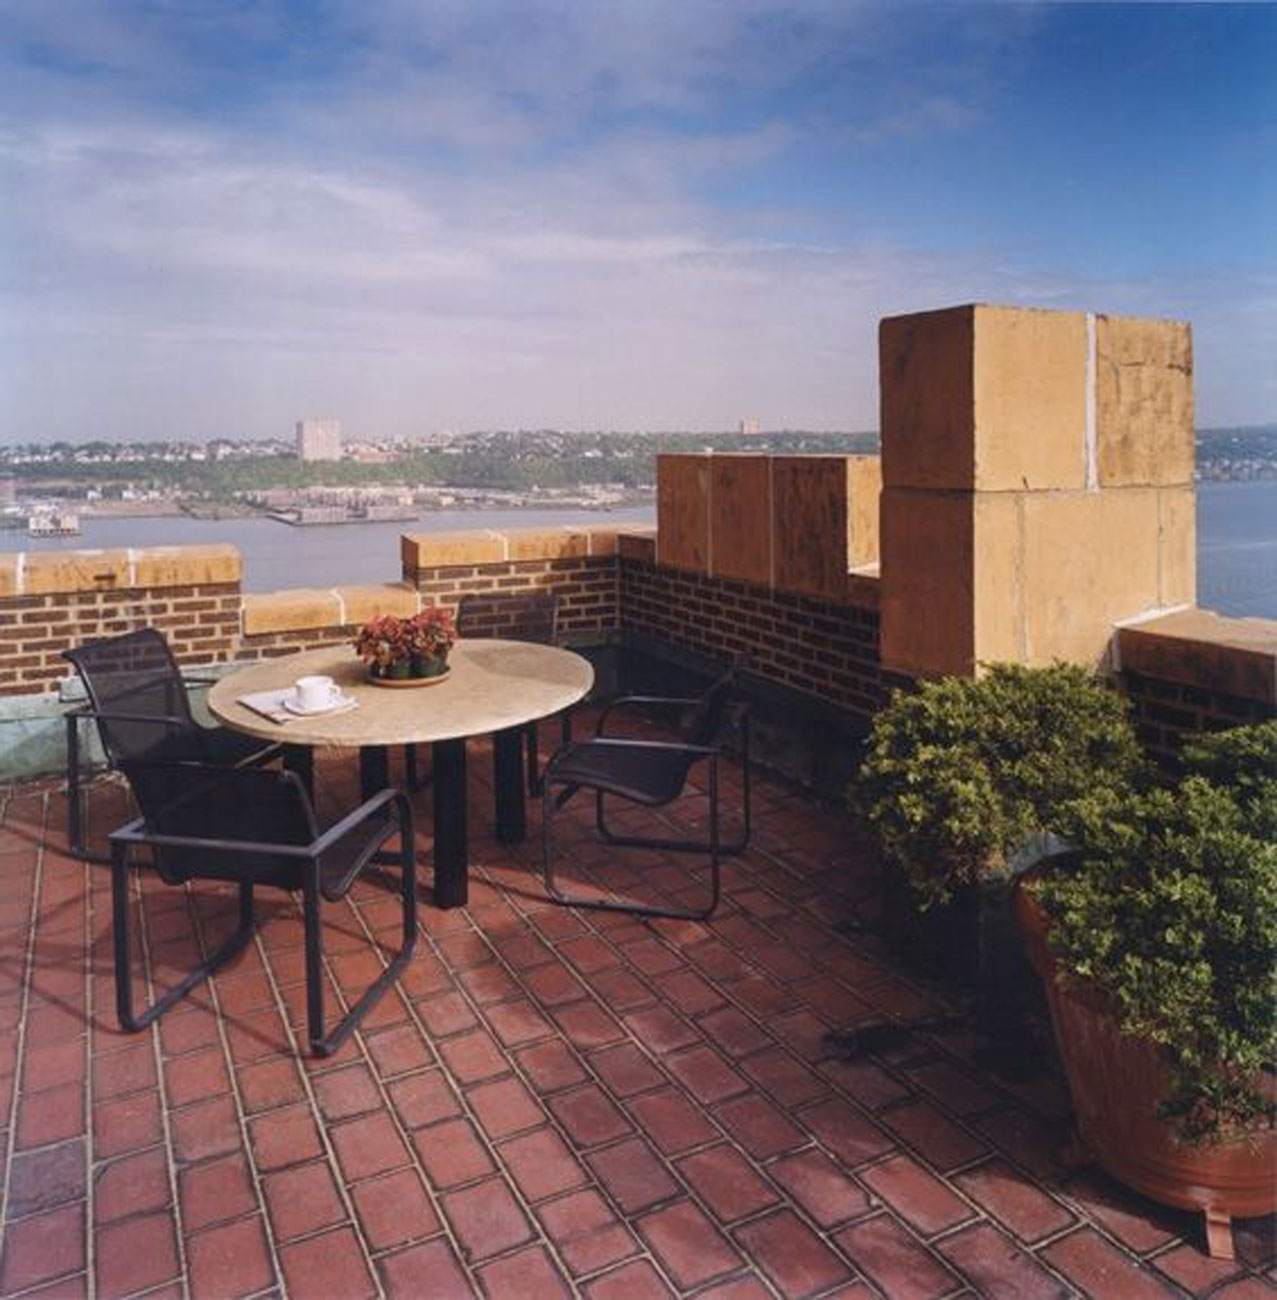 Apartment for Bachelor, Modern Penthouse with Incredible Views - Rooftop View